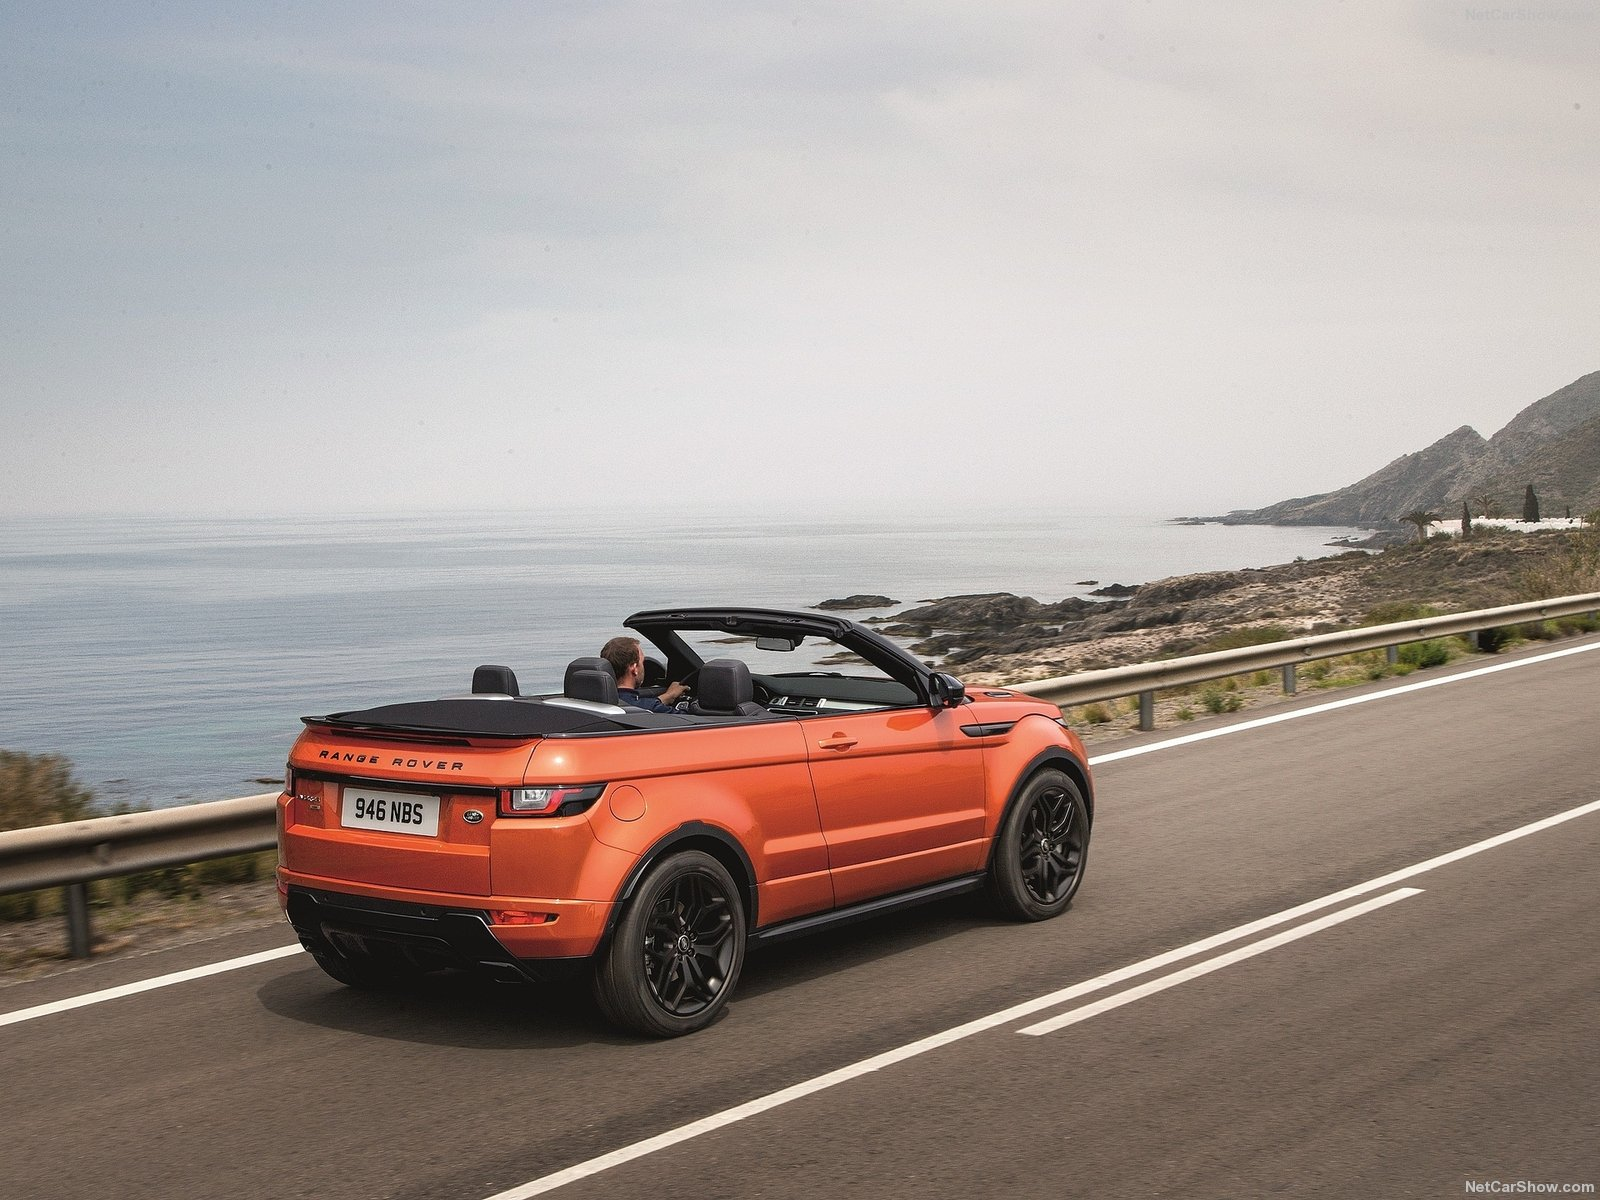 Land Rover Range Rover Evoque Convertible photo 153955